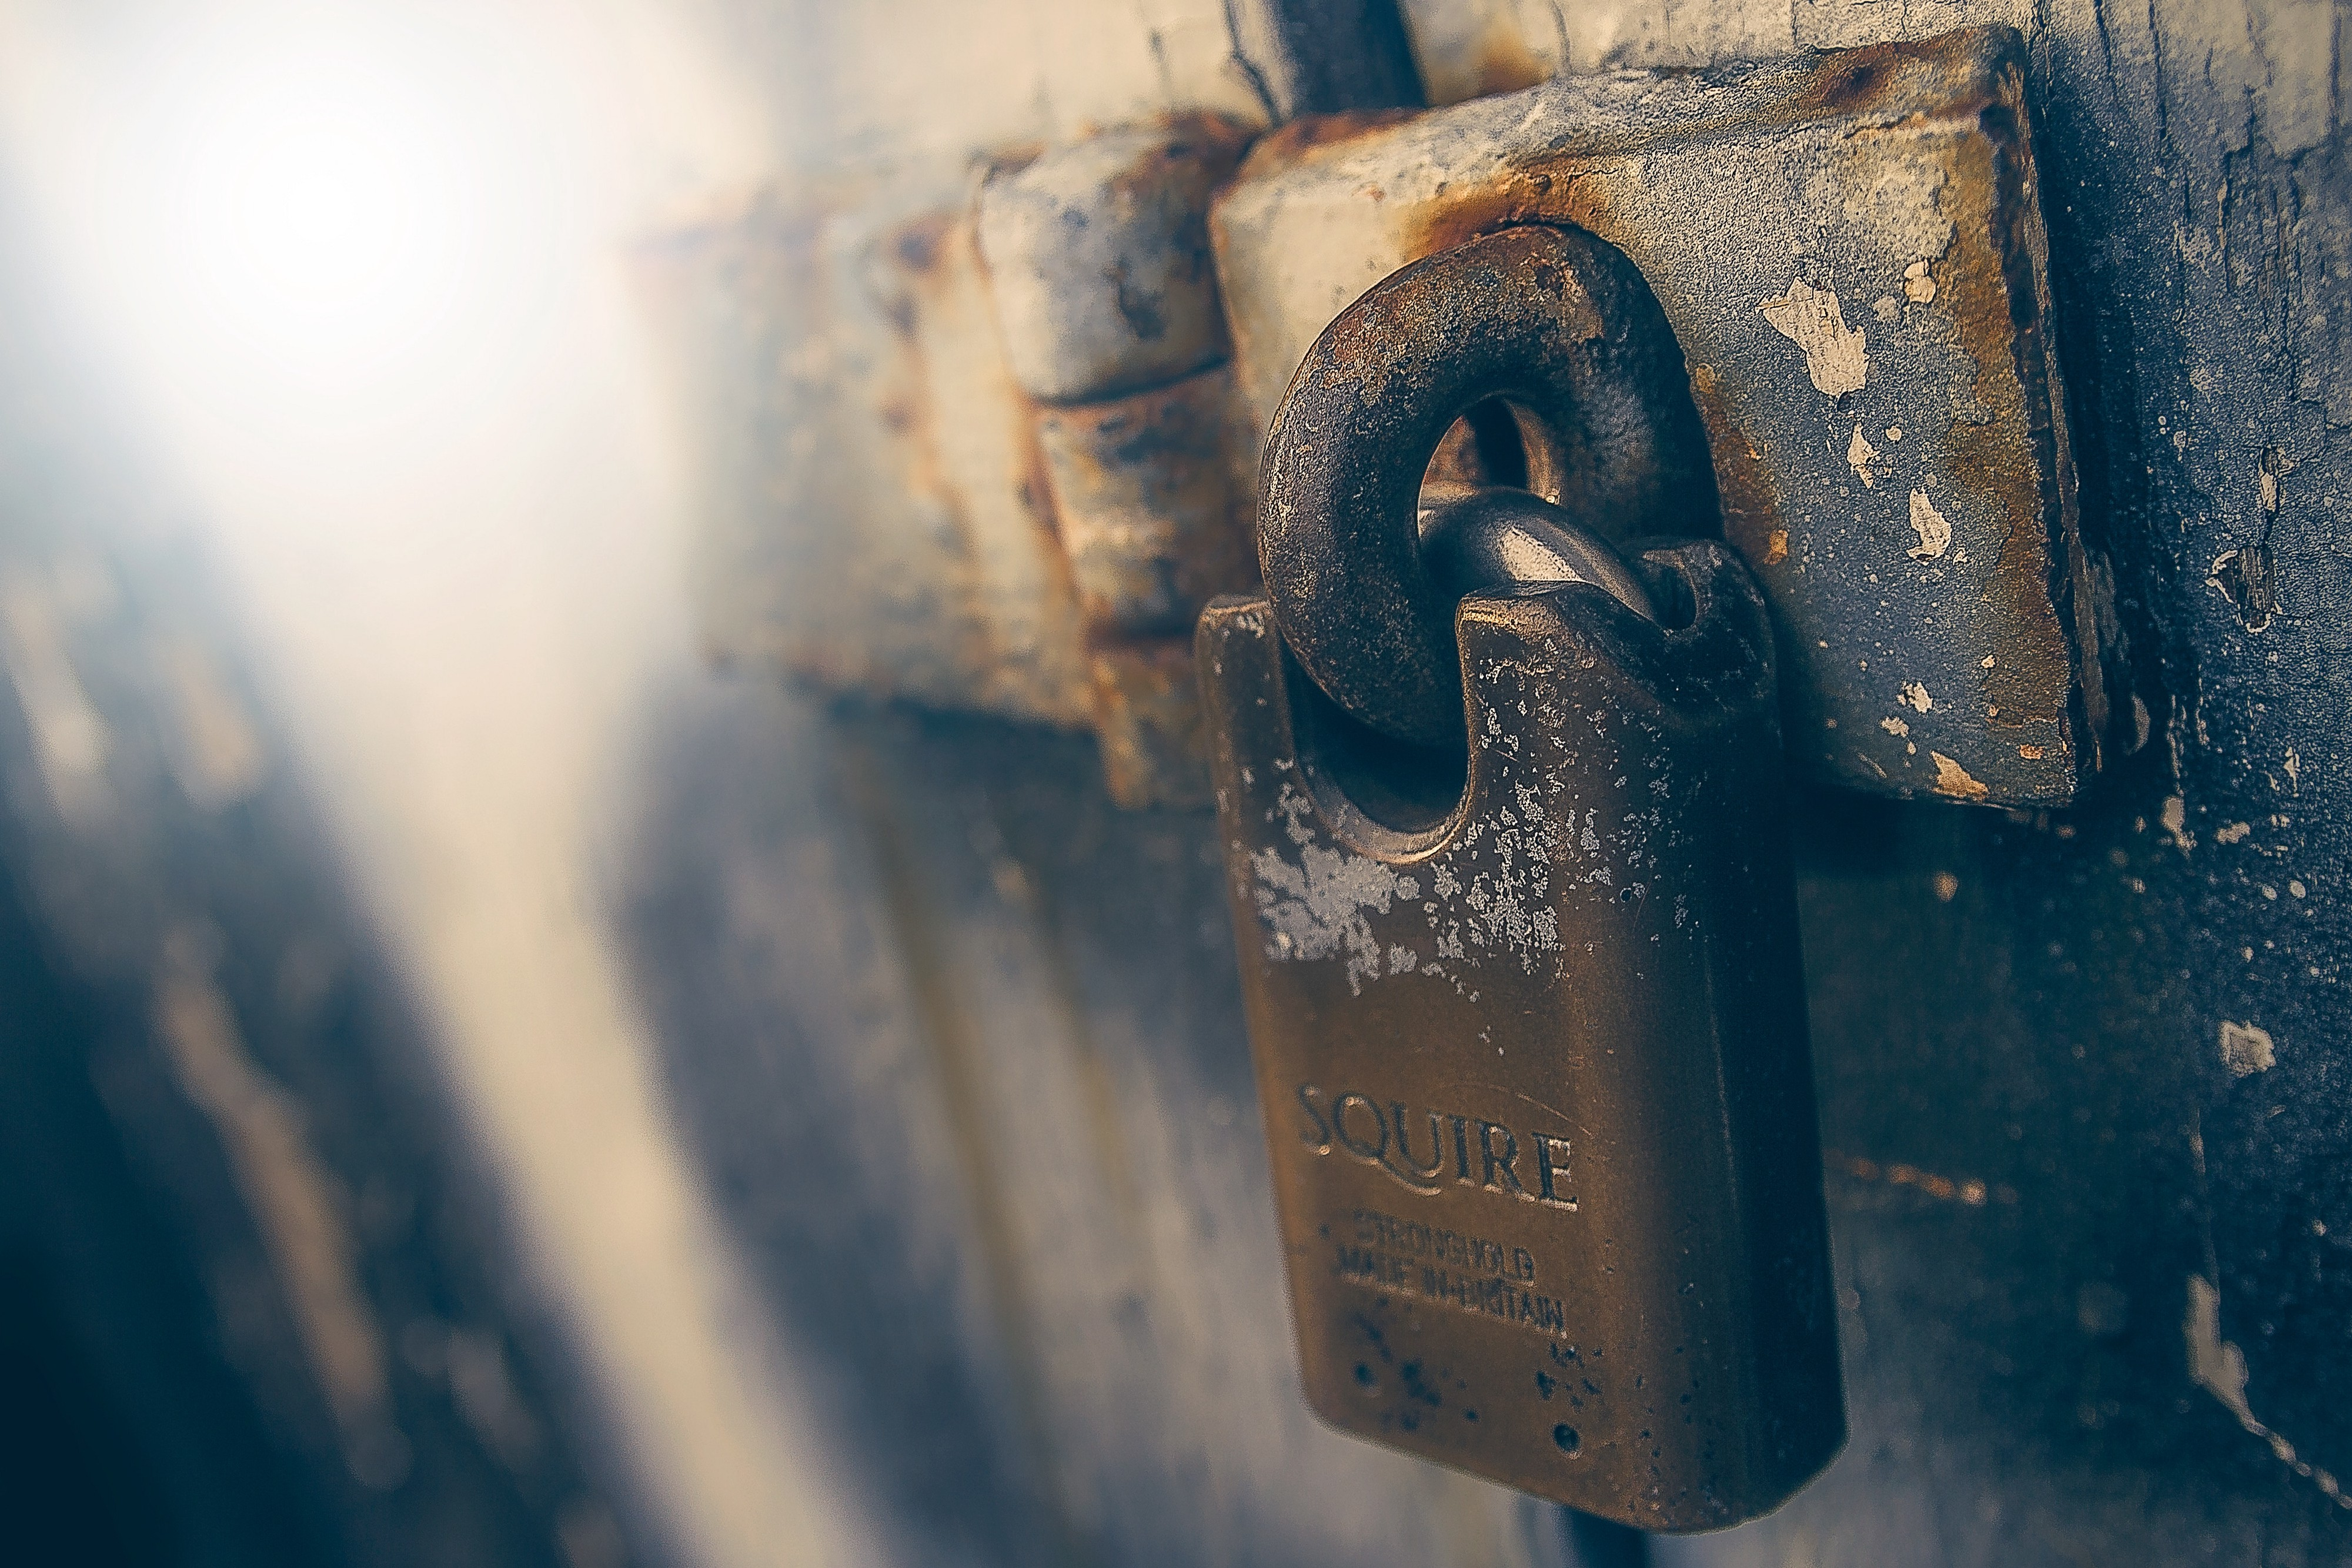 Storing confidential data in the cloud securely with Cryptomator